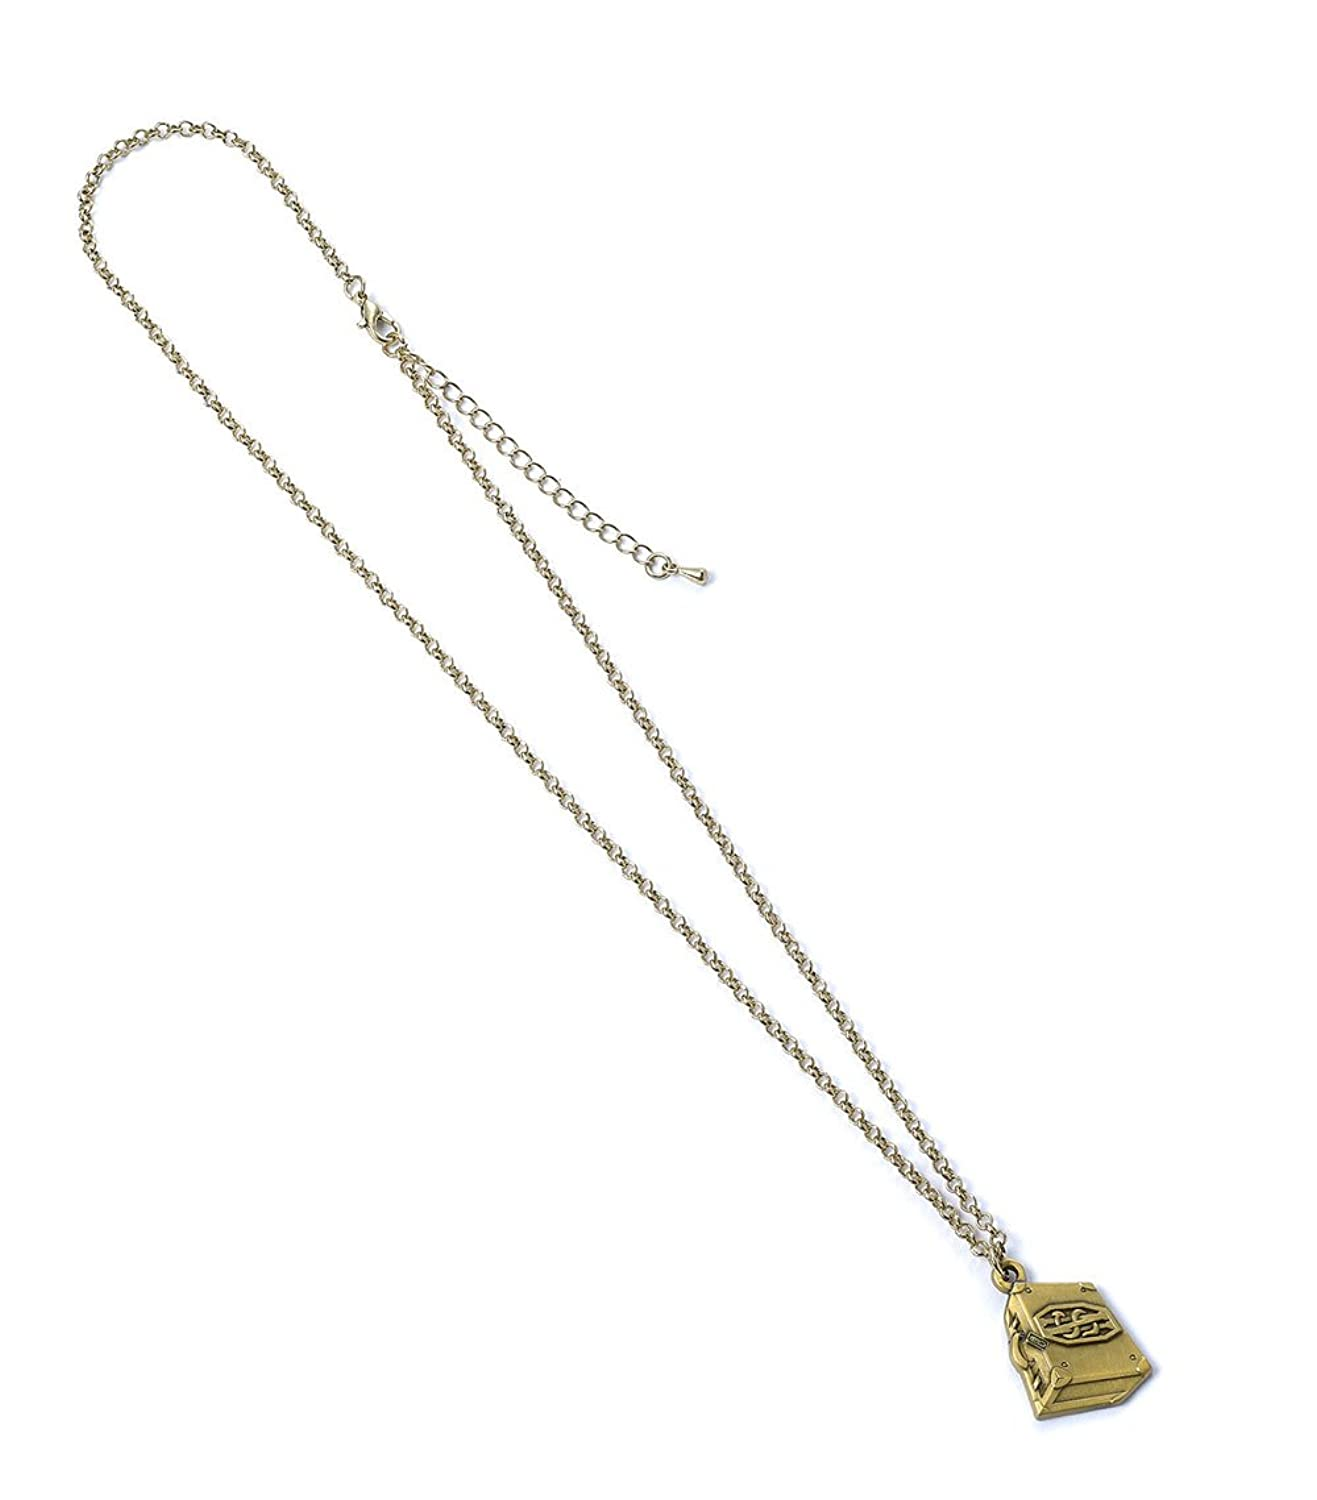 Fantastic Beasts and Where to Find Them Newt Scamander Suitcase Necklace